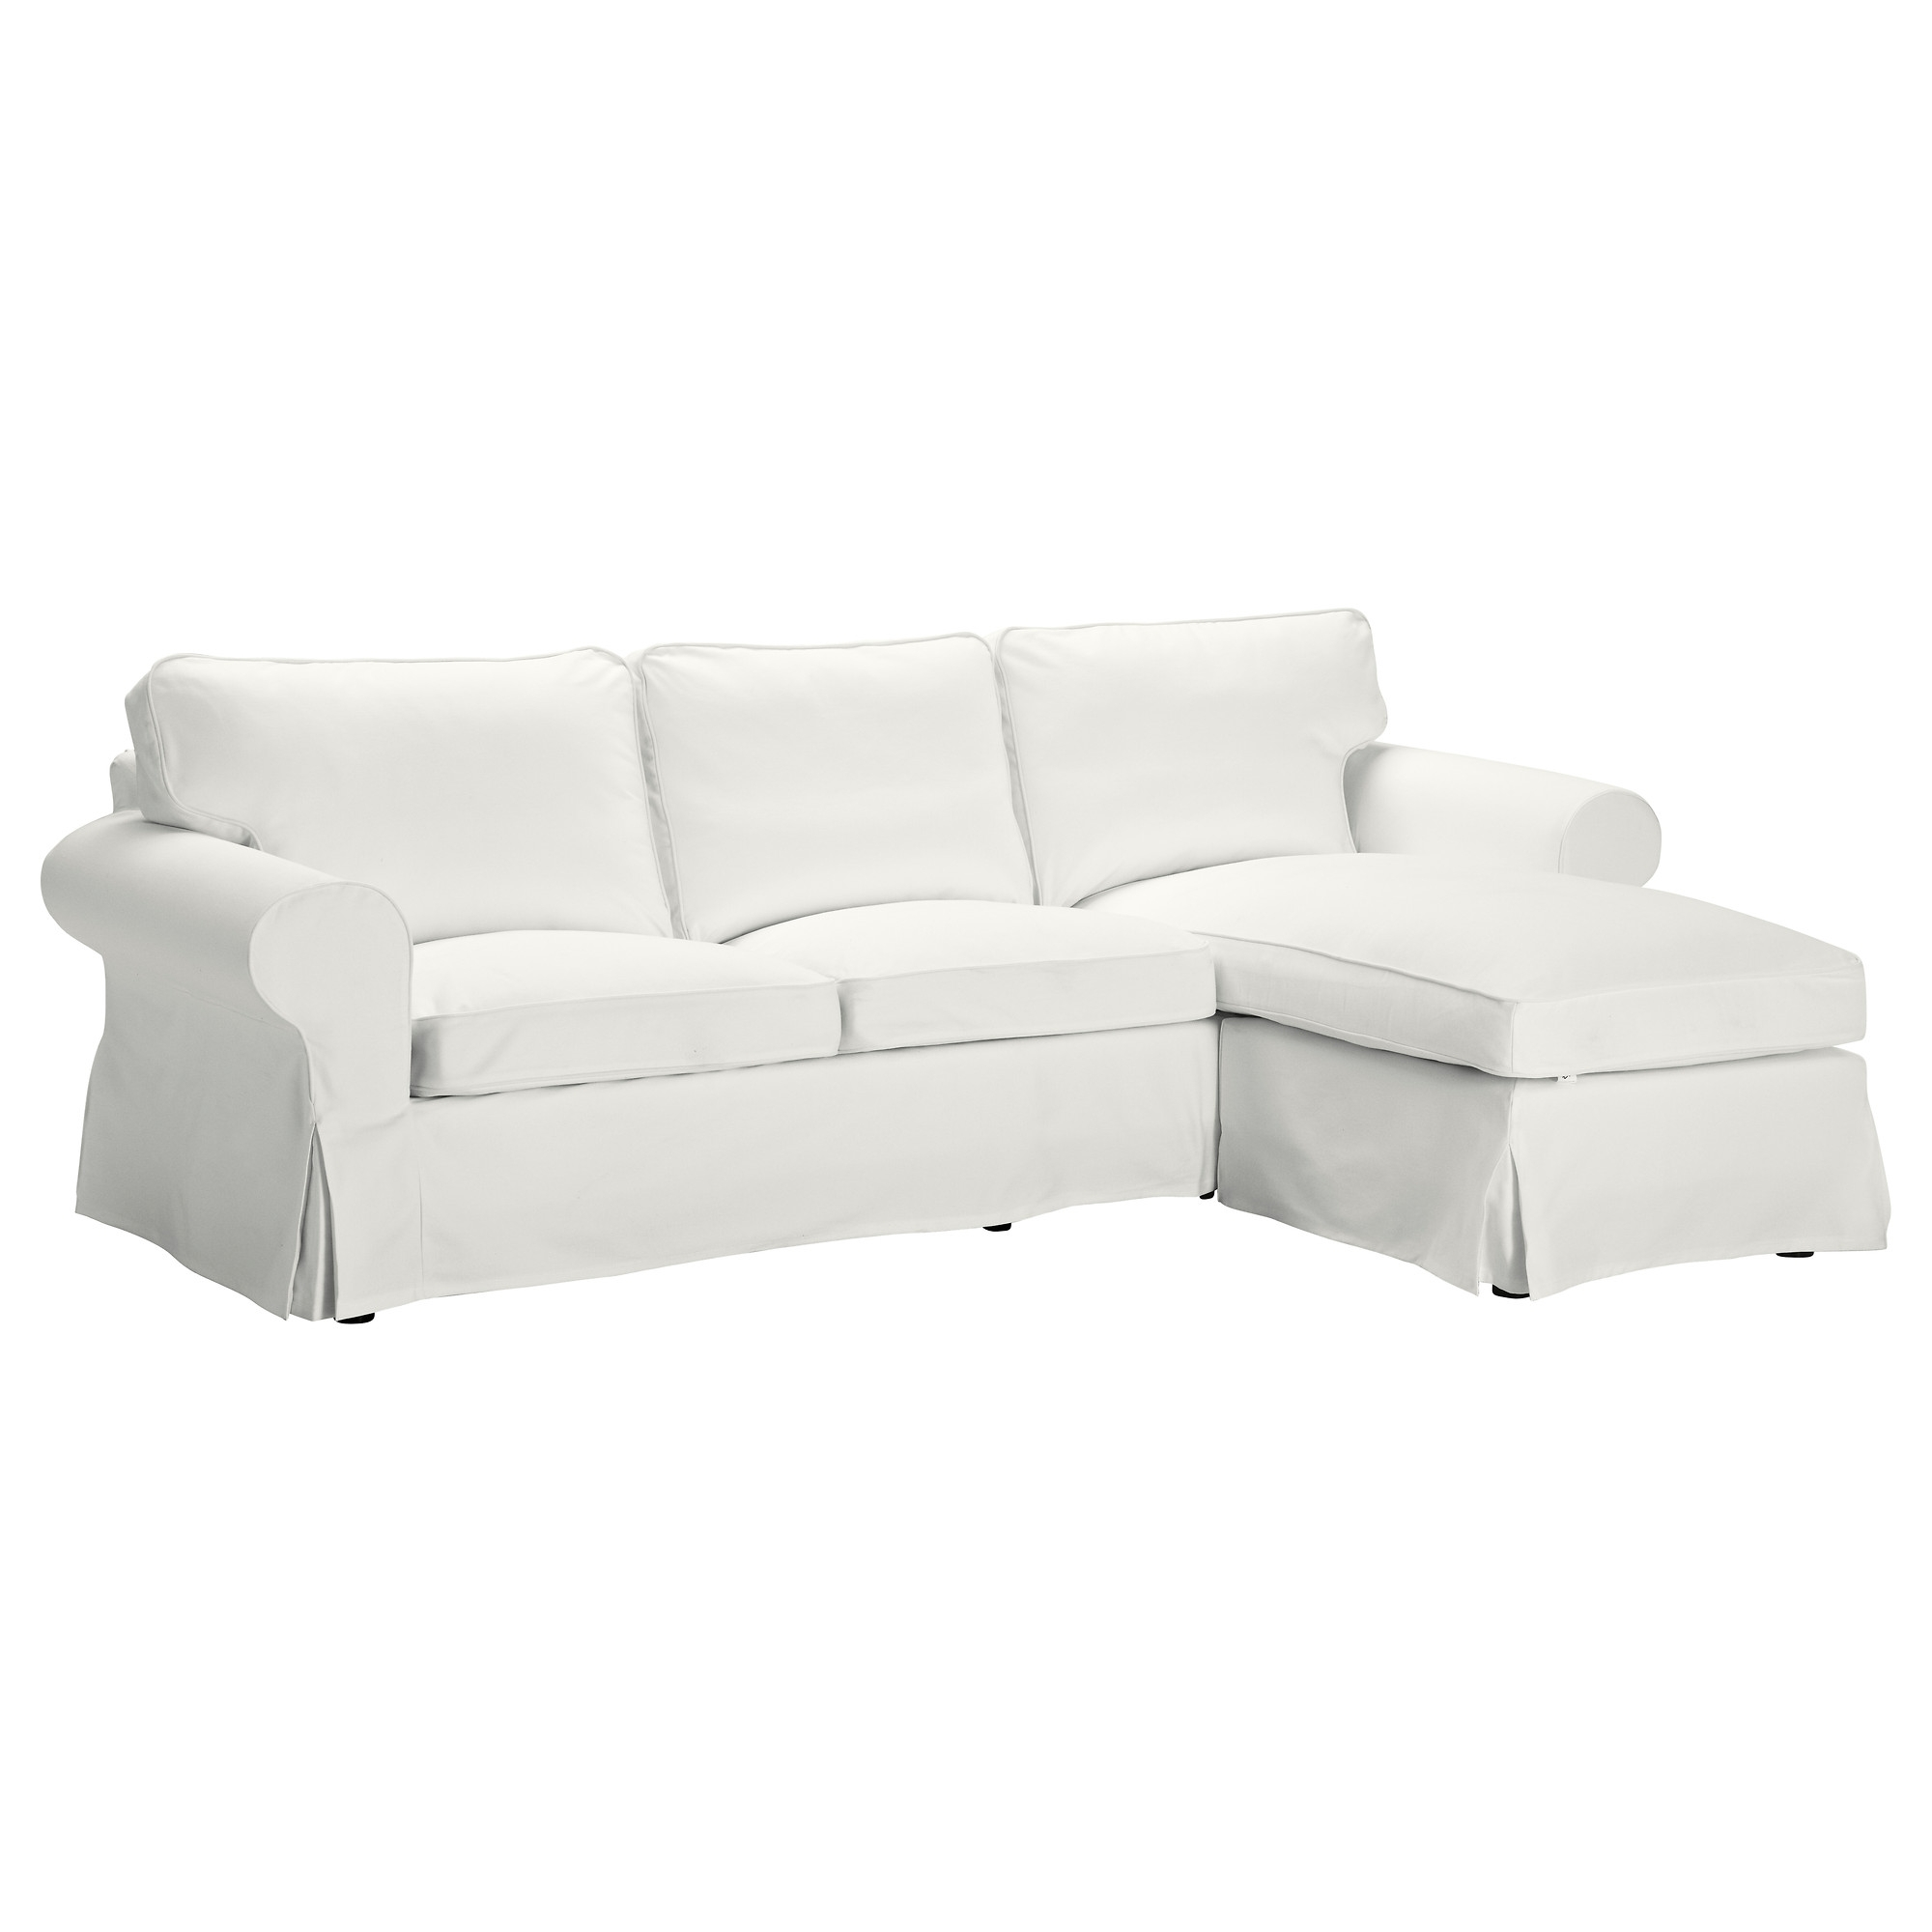 Preferred Ikea Chaise Sofas With Regard To Ektorp Cover For 3 Seat Sofa With Chaise Longue/blekinge White – Ikea (View 12 of 15)